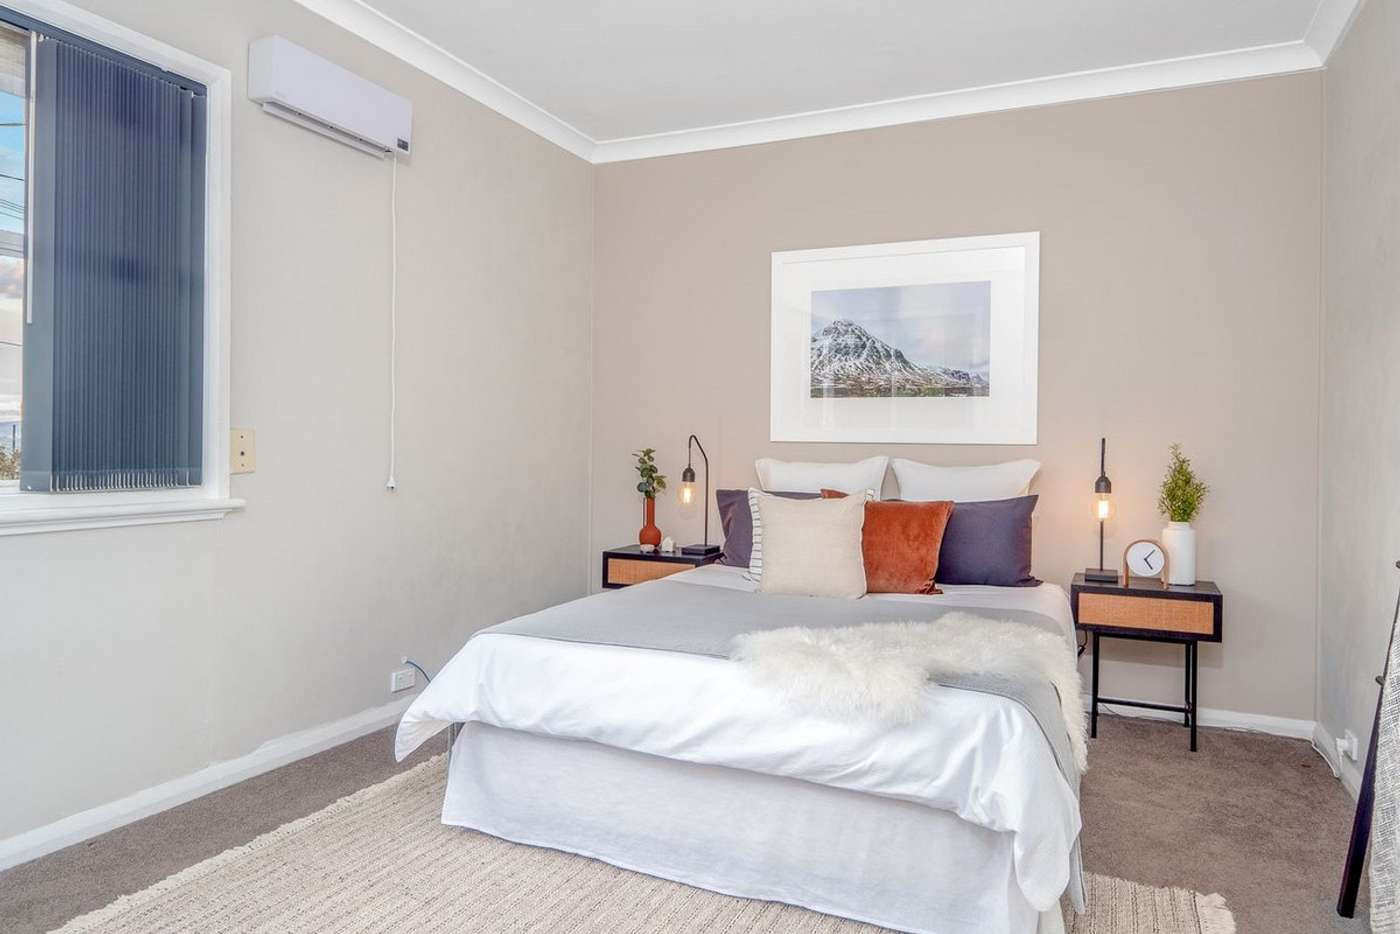 Sixth view of Homely house listing, 43 Easton Avenue, West Moonah TAS 7009